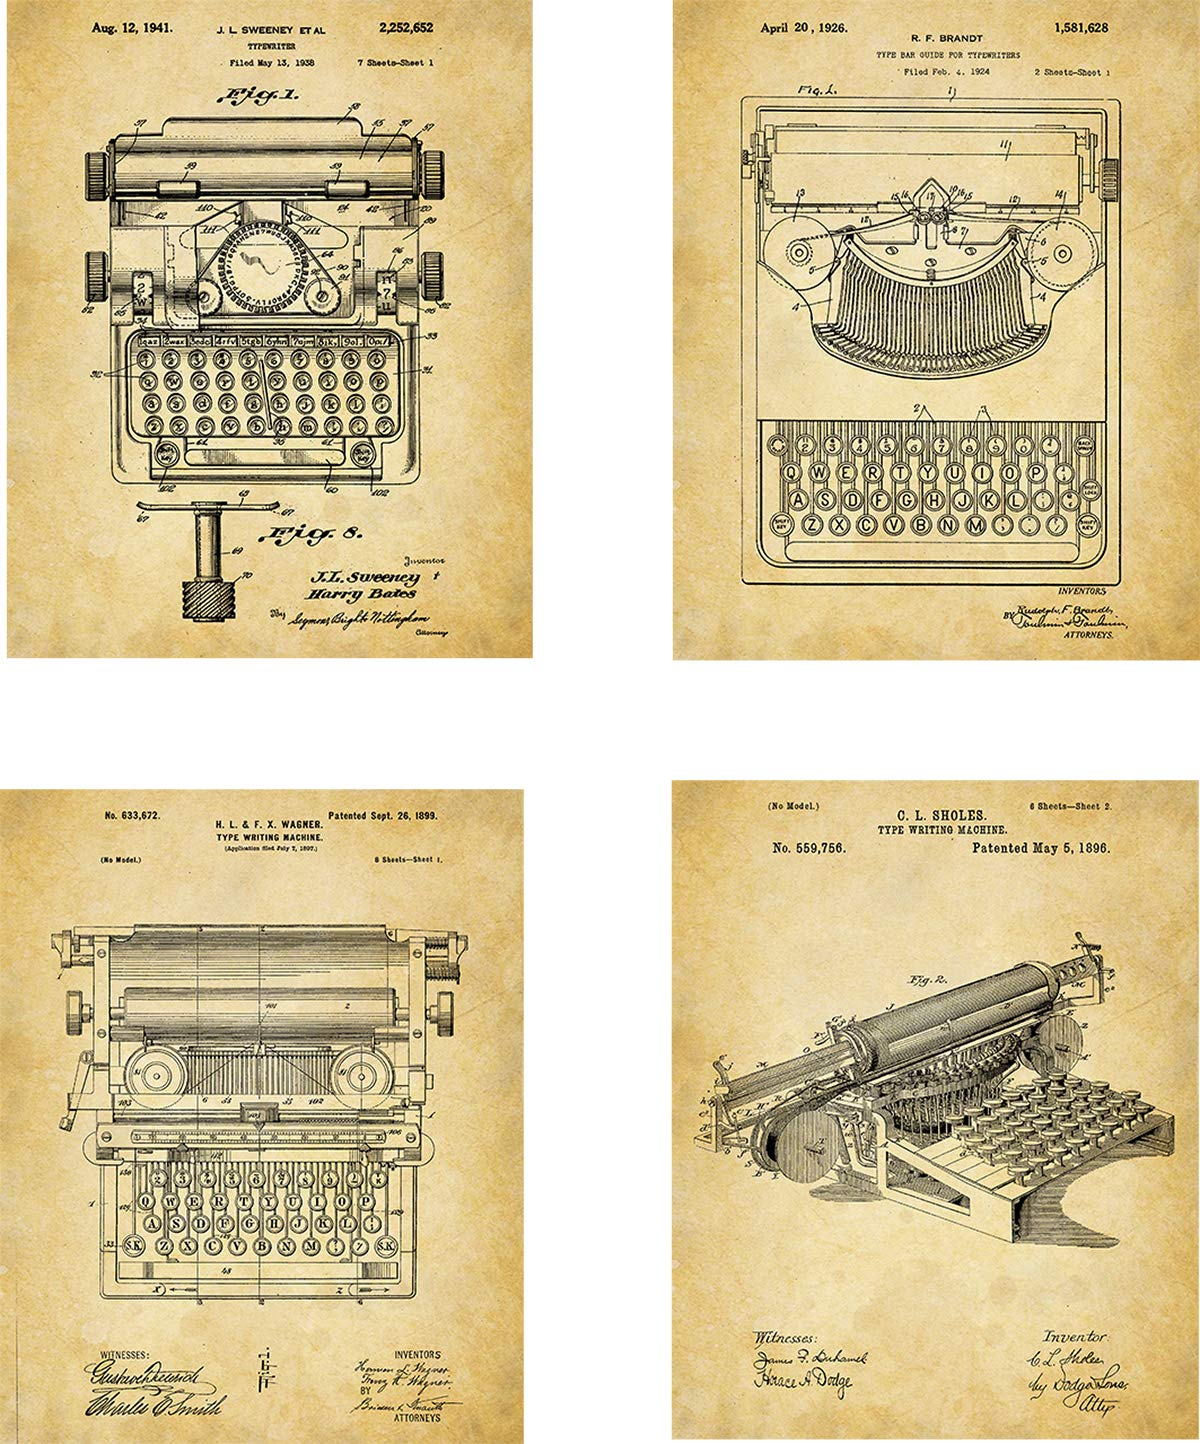 Typewriter Patent Wall Art Prints - set of Four (8x10) Unframed - wall art decor for office workers